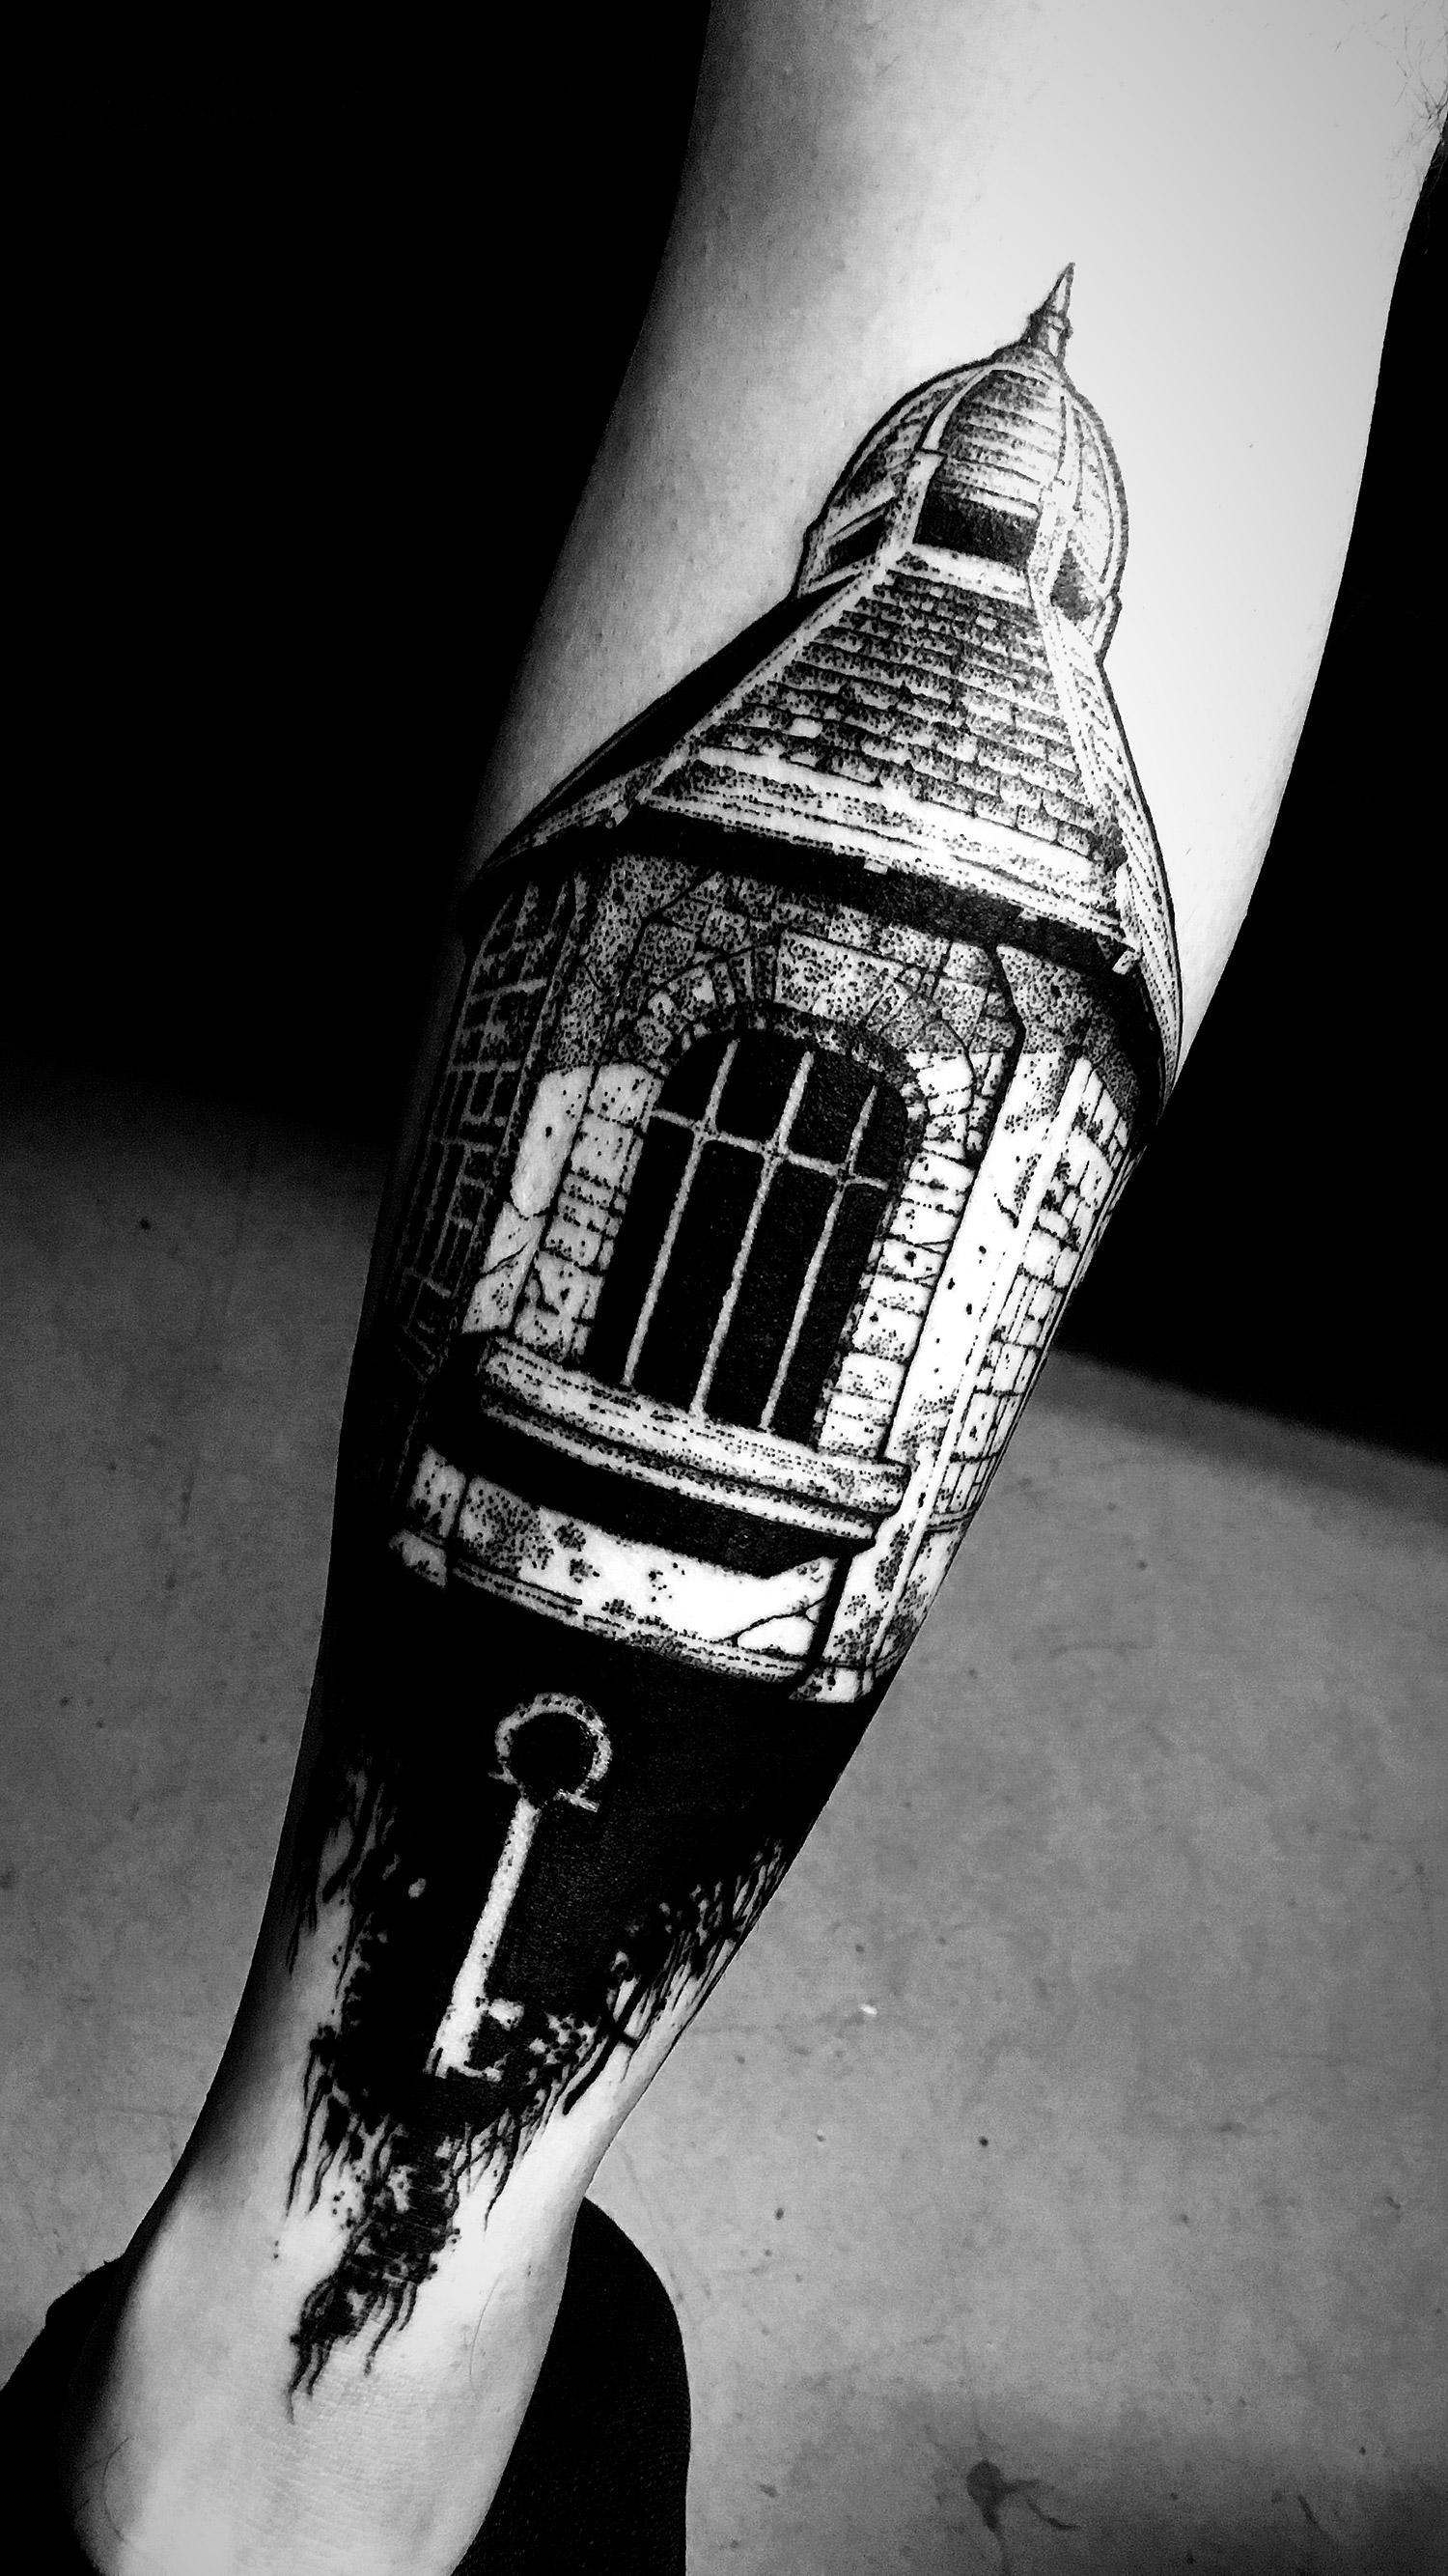 El Nigro - old architecture tattoo key